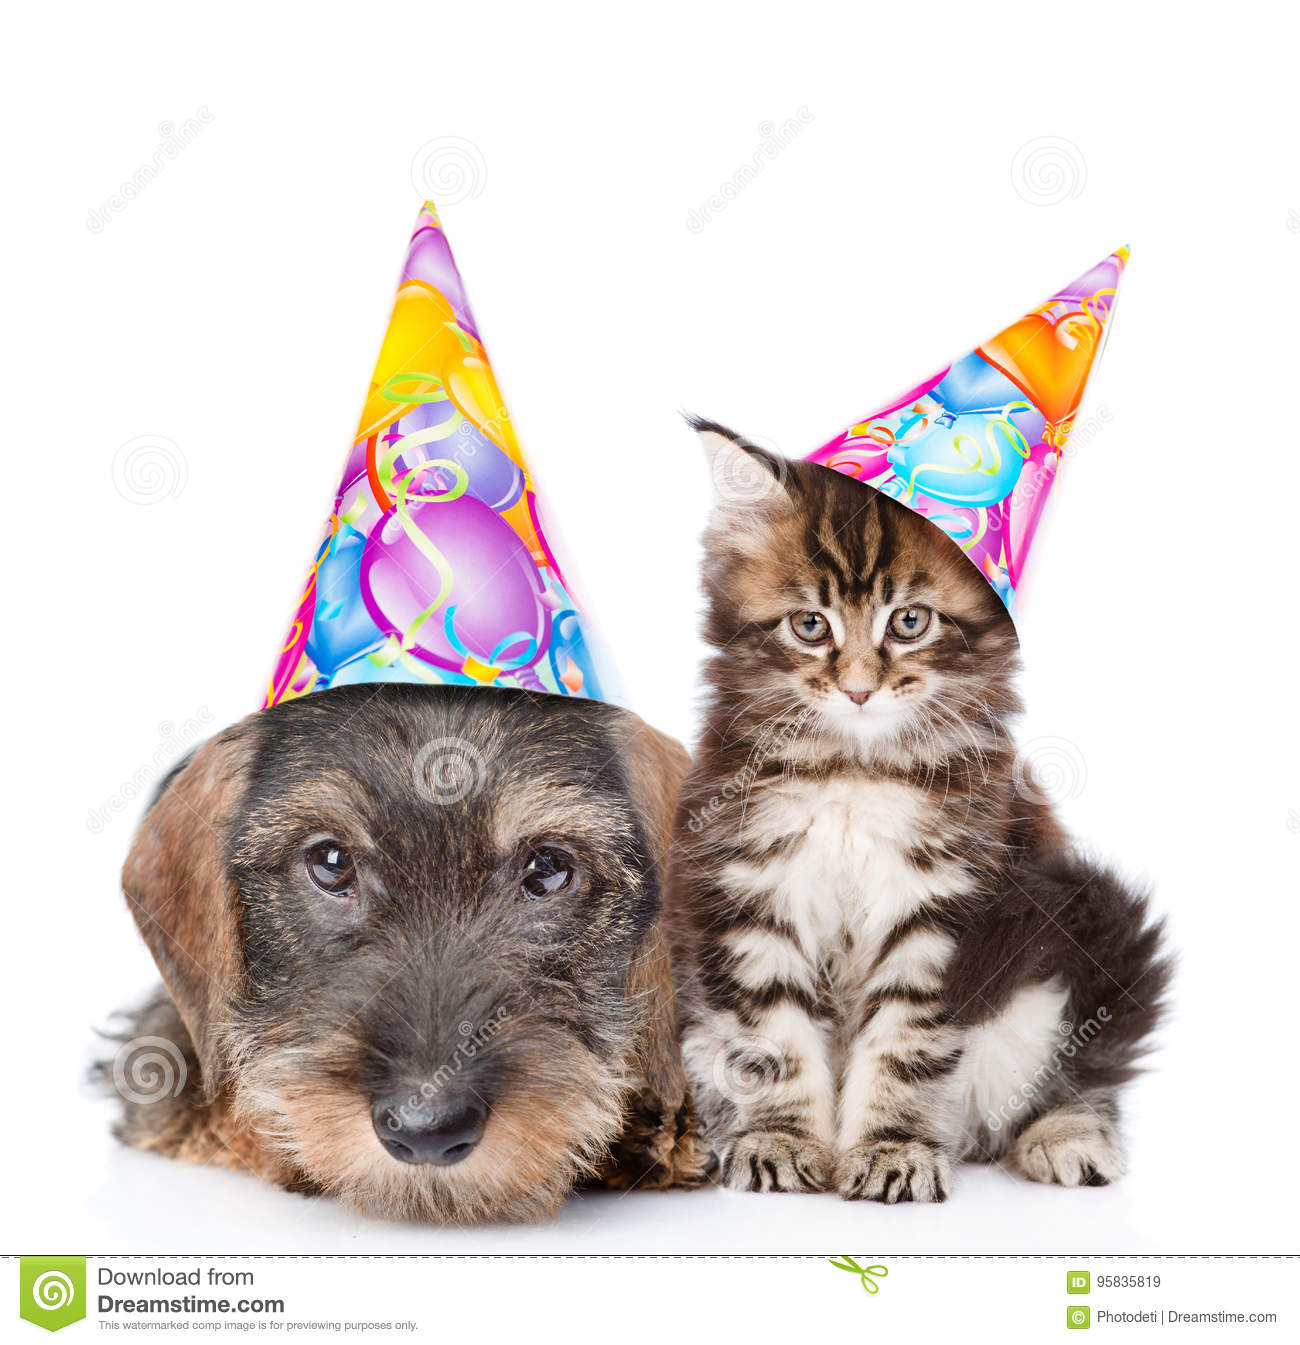 Cat And Dog In Birthday Hats Looking At Camera Together Isolated On White